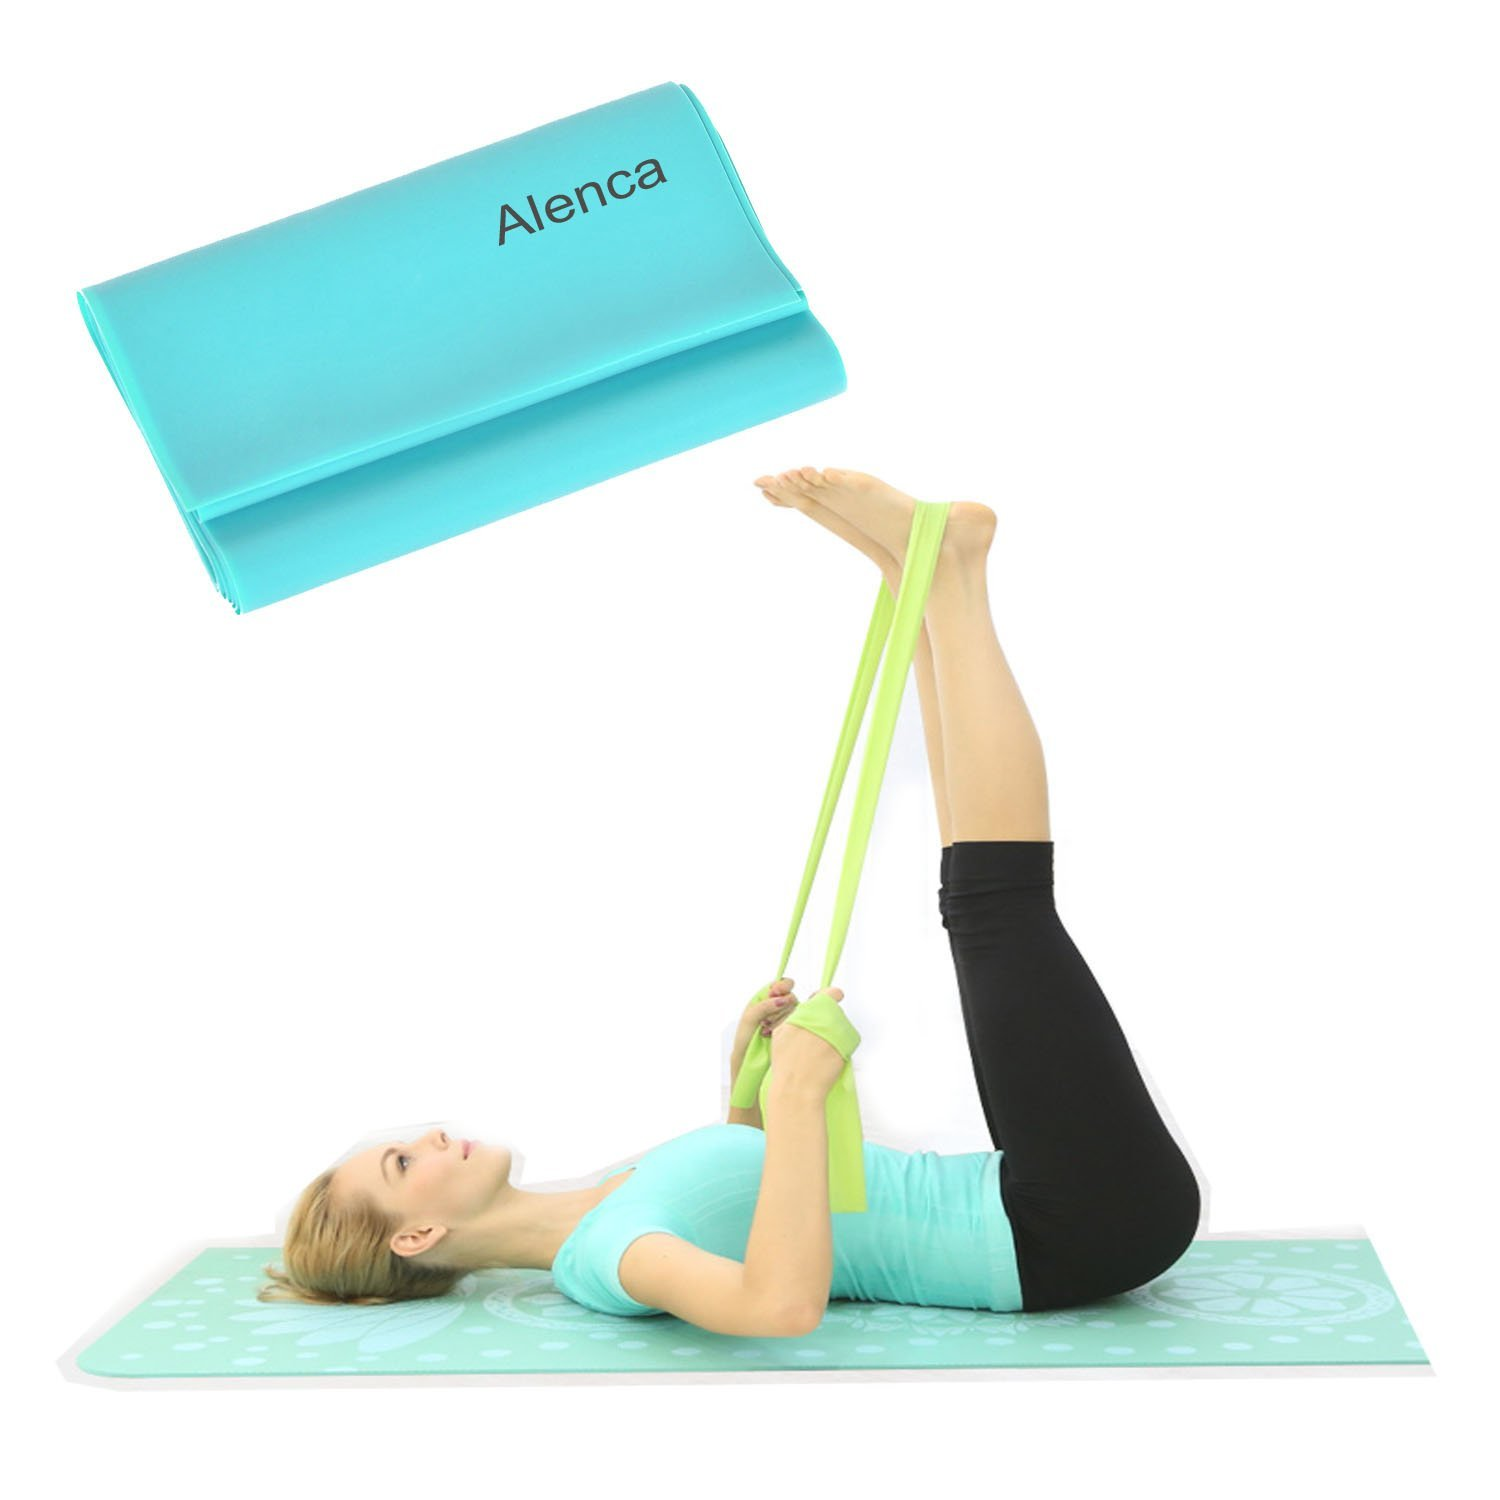 chair exercises for abs slip cover wing back cheap find deals on line at get quotations 1 rated yoga bands alenca fitness exercise equipment your home gym